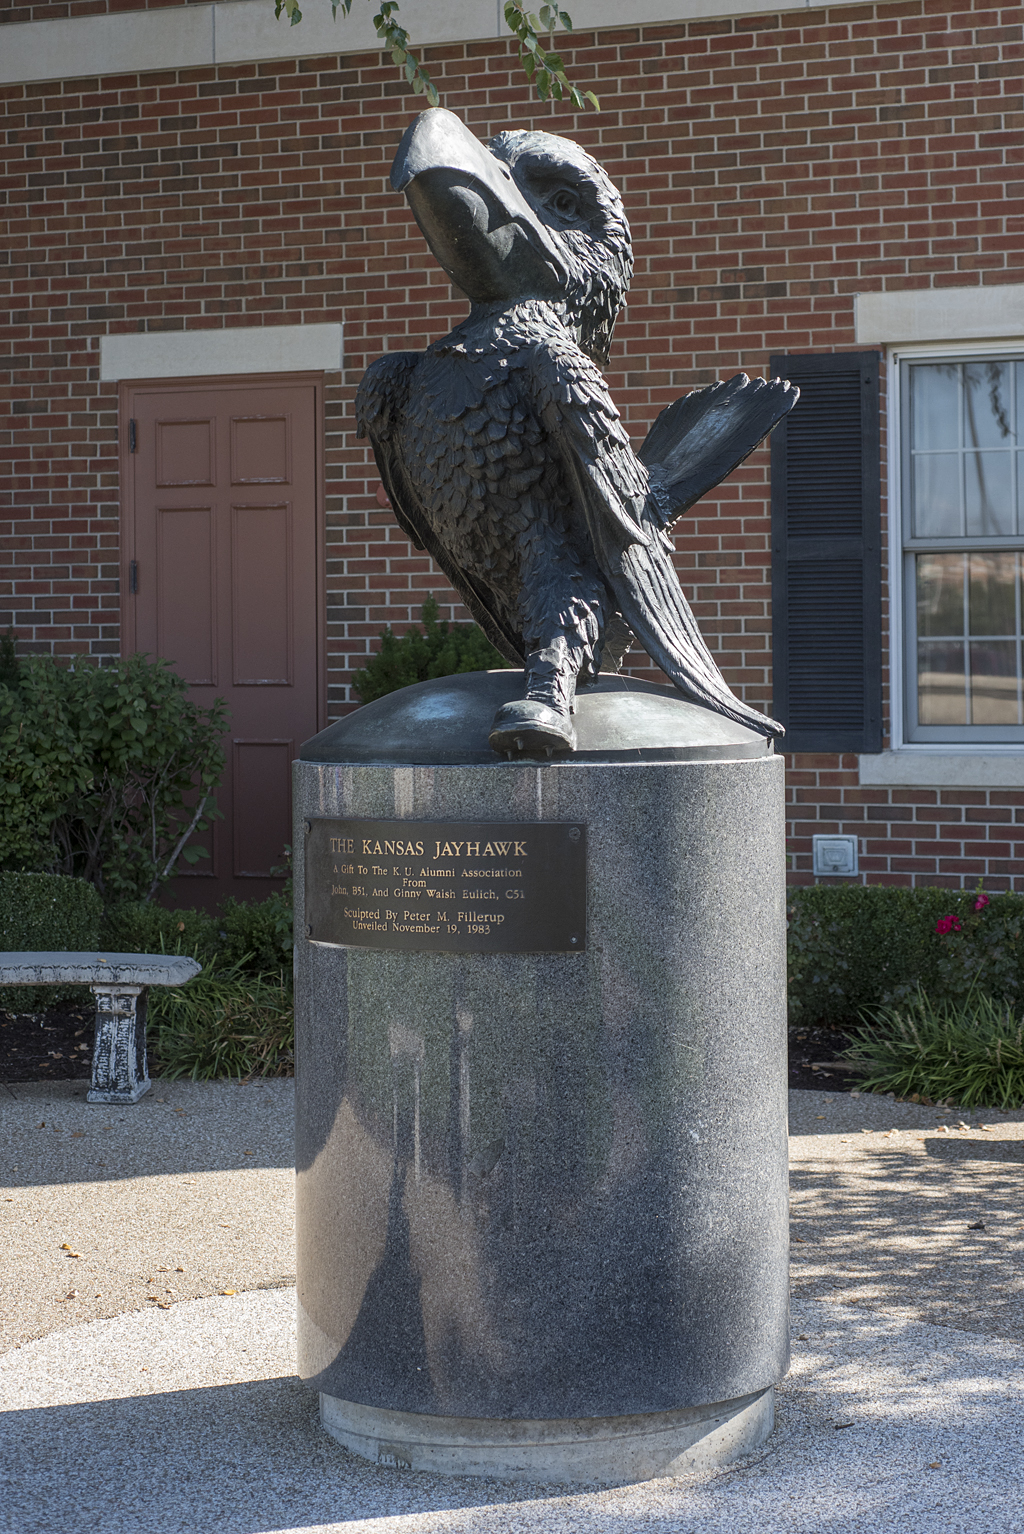 The Kansas Jayhawk by Peter M. Fillerup